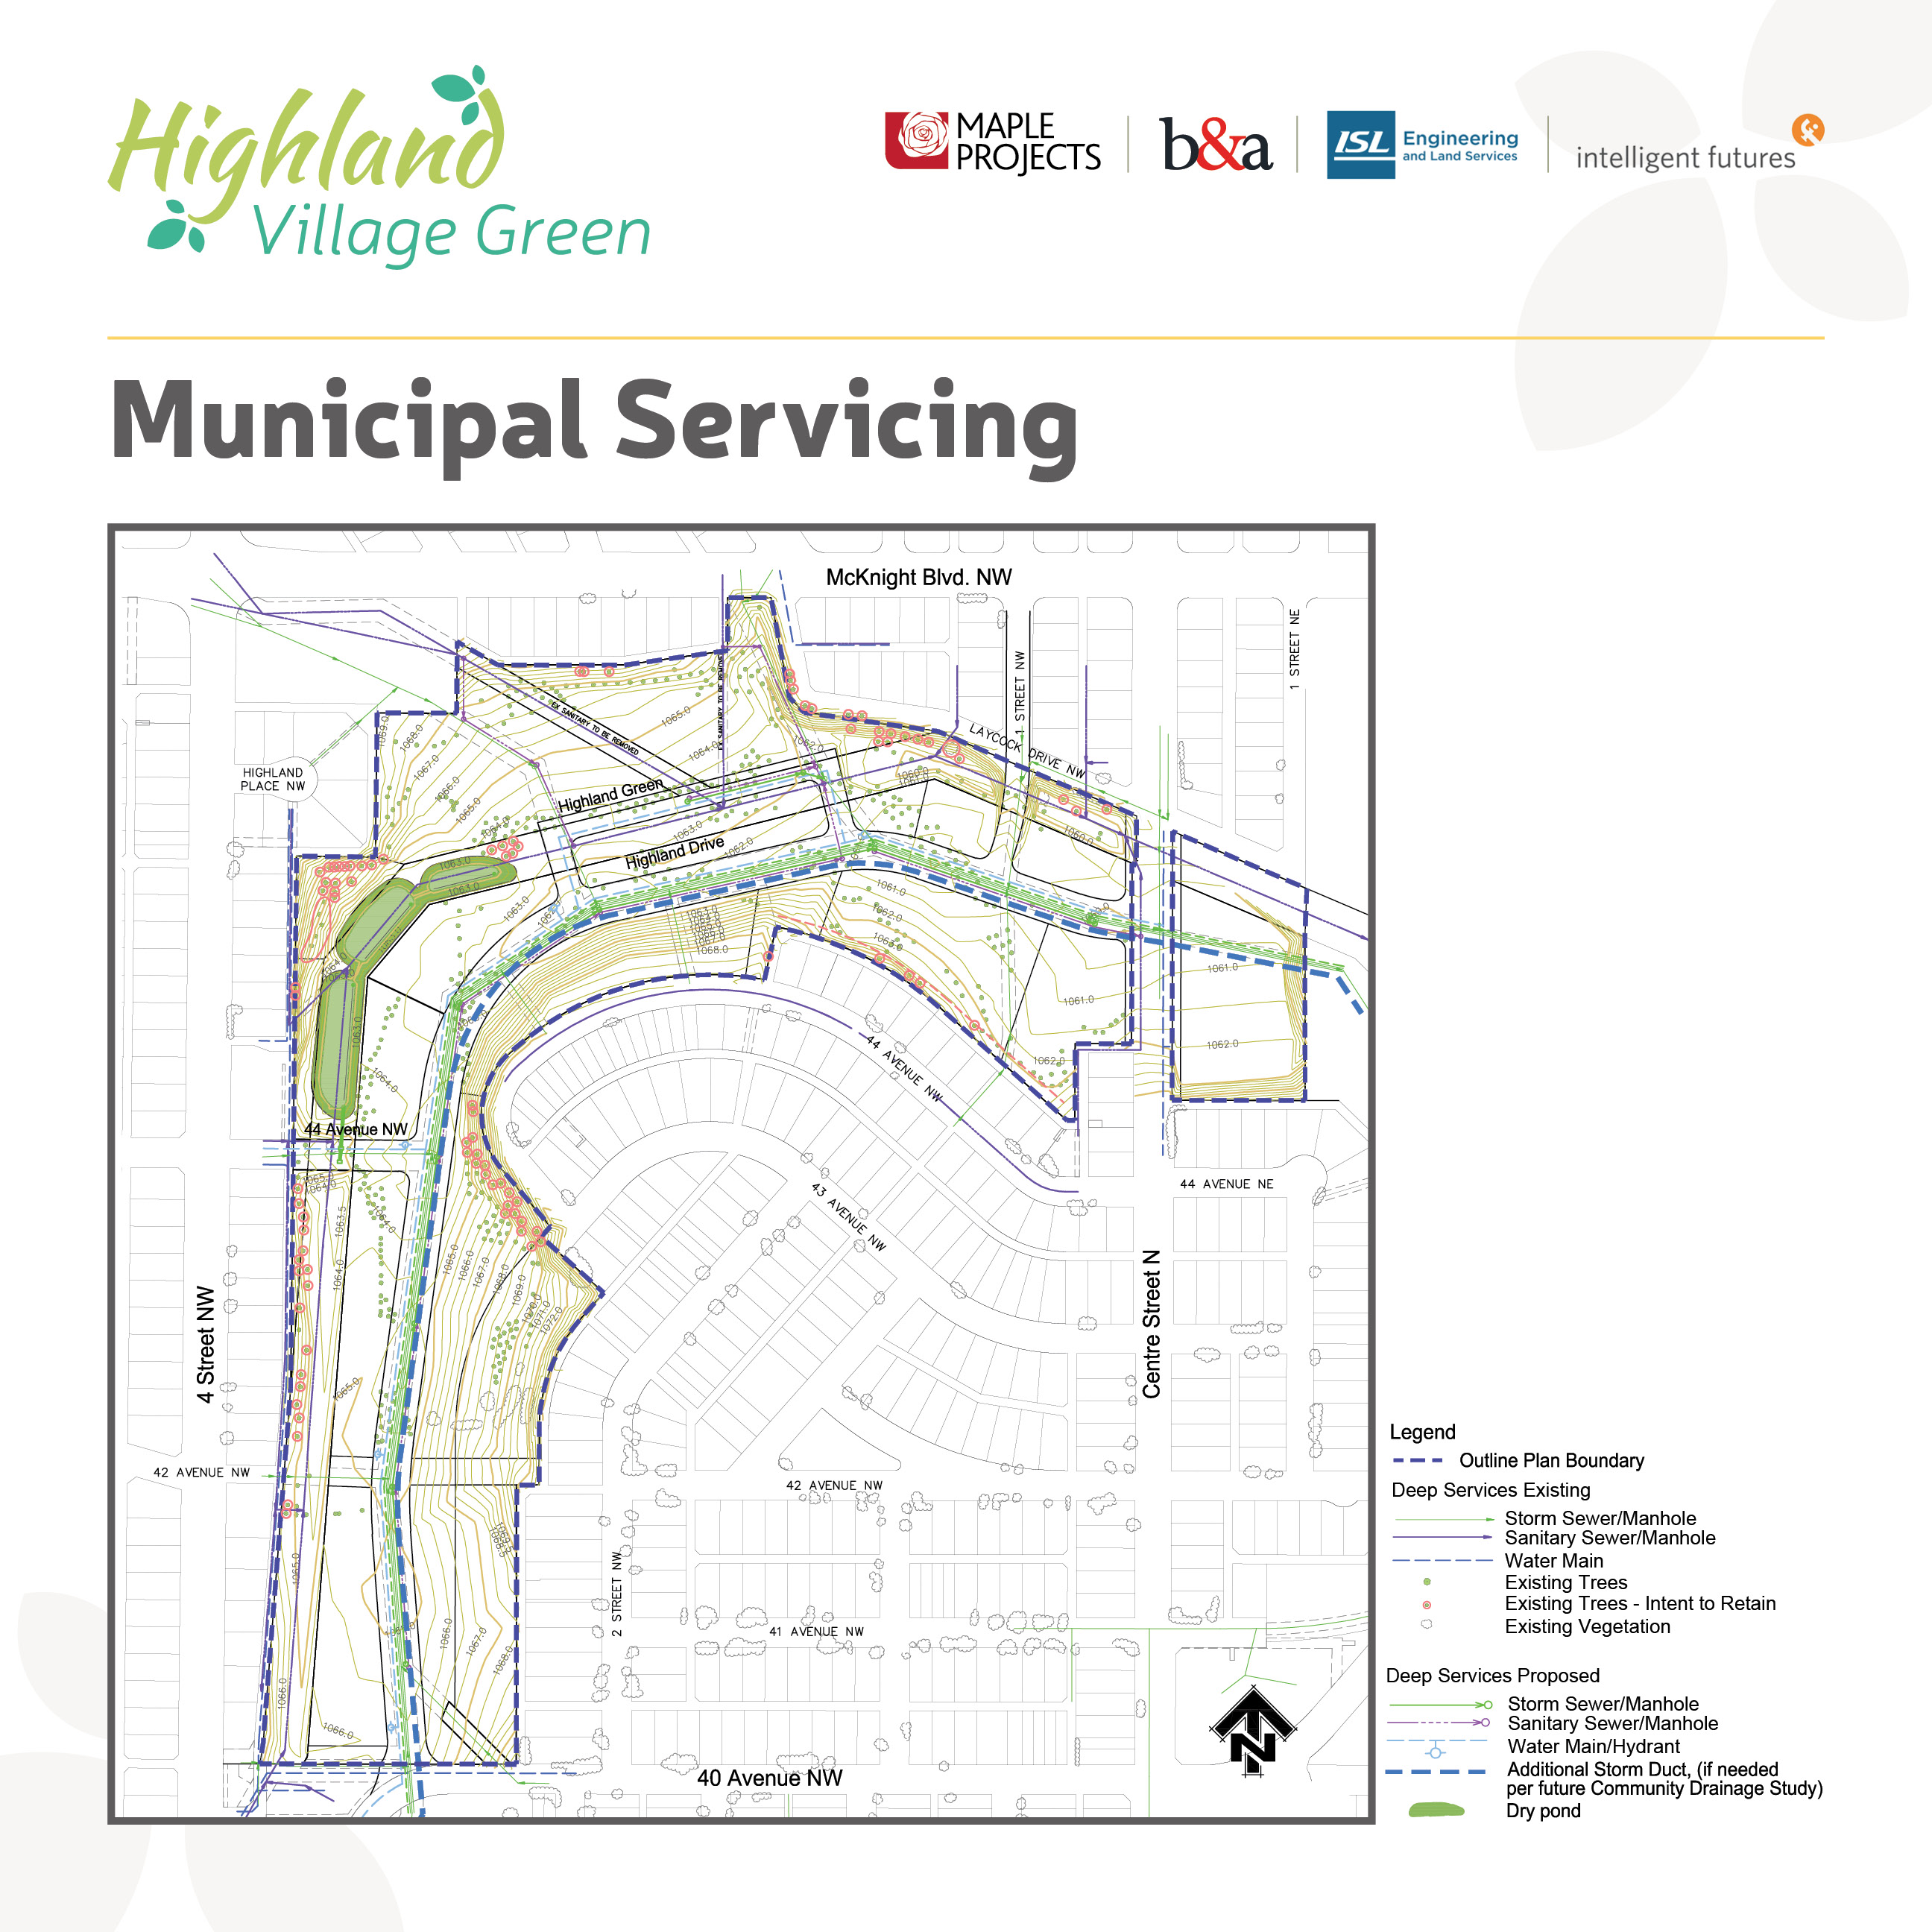 1564 - Highland Village Green - Open House March 2016 - Final Boards7